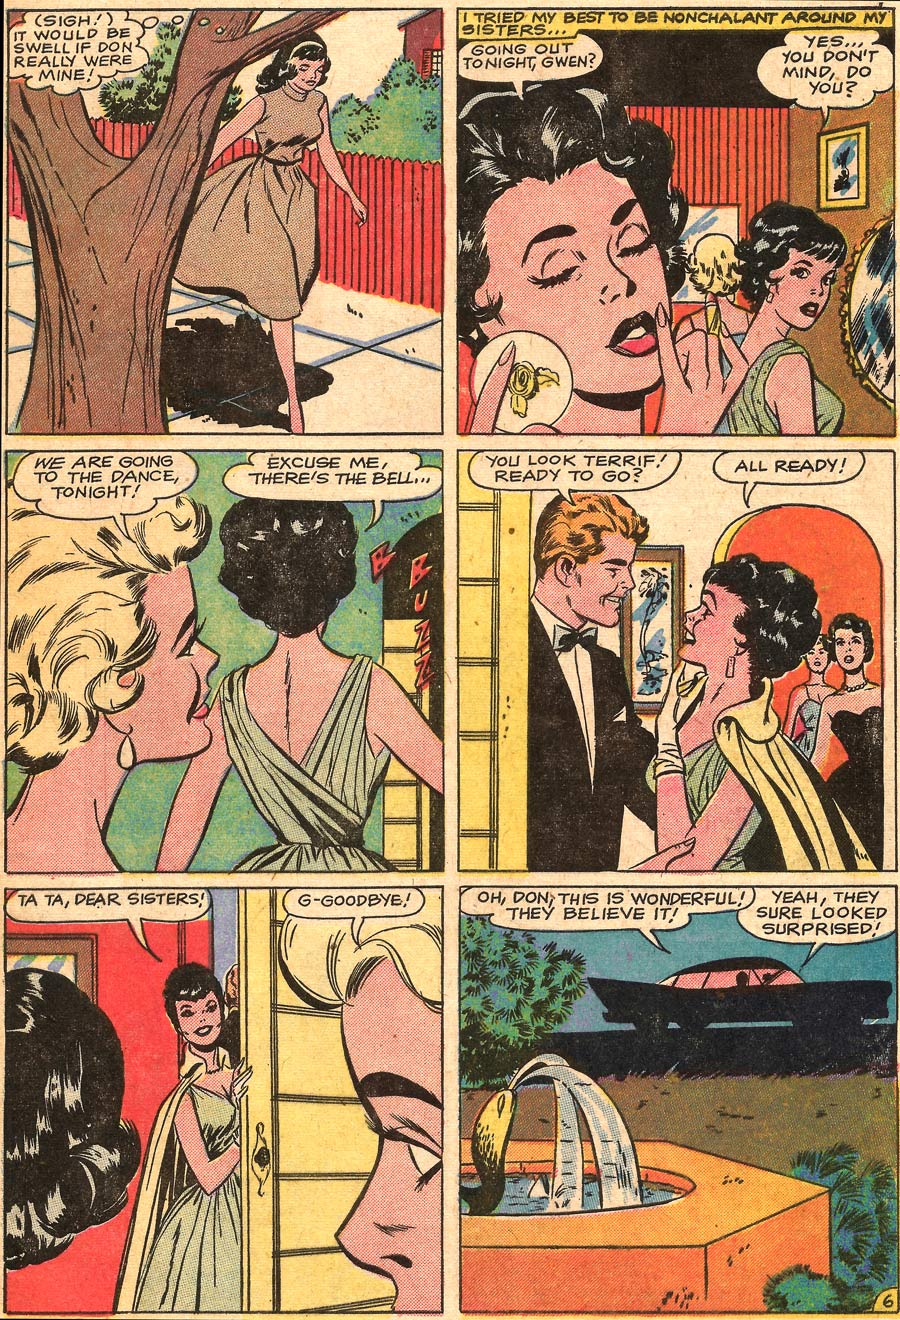 Original art by Vince Colletta Studio in First Kiss #8, 1959.